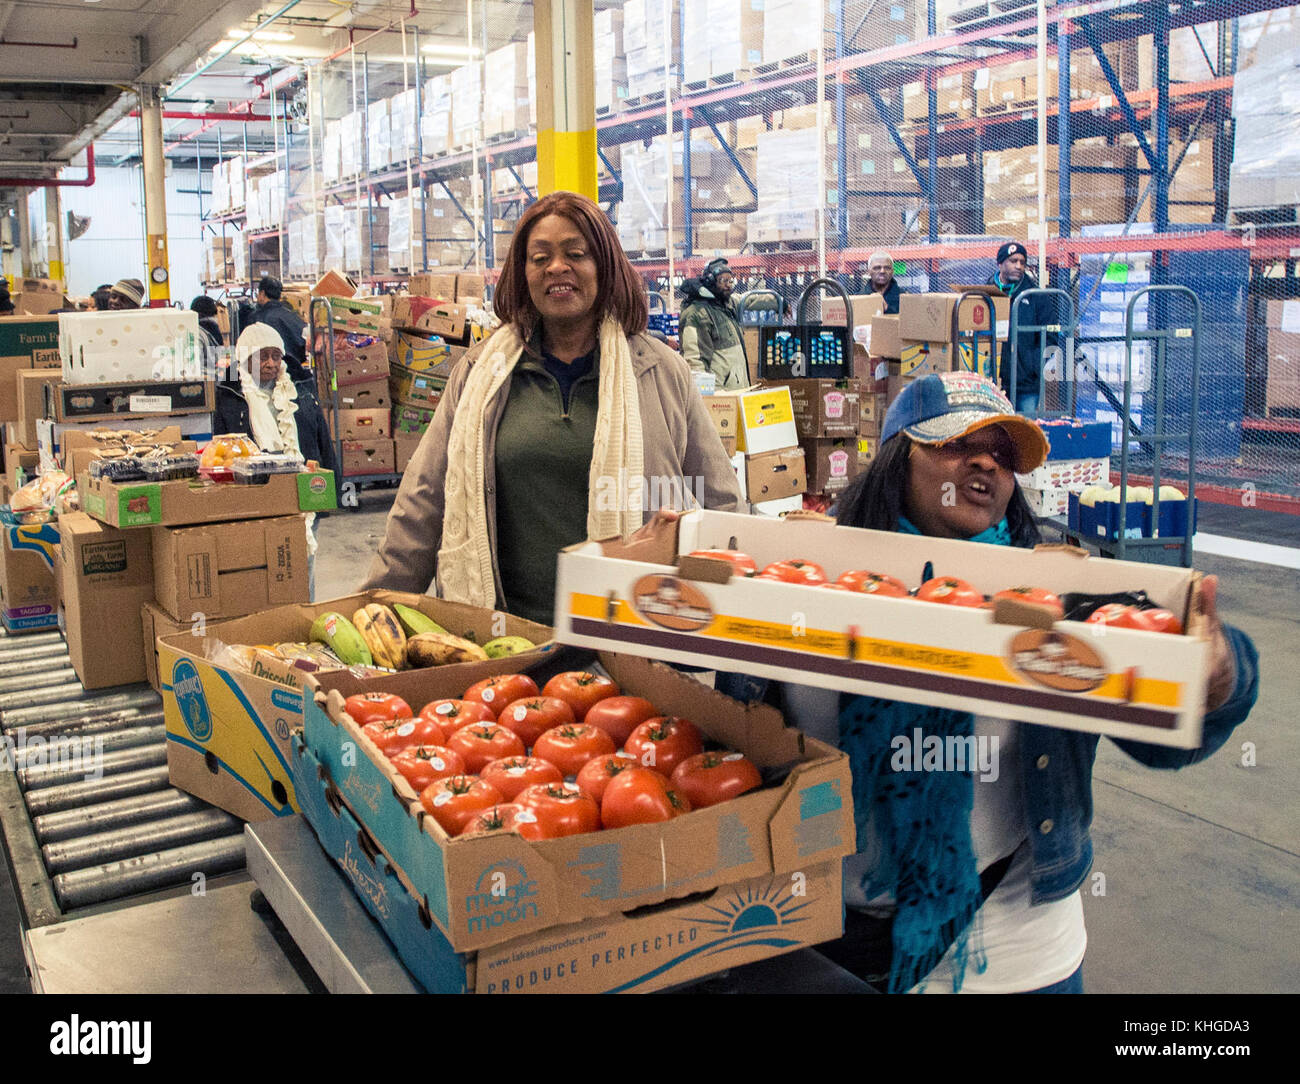 Cathedral International Soup Kitchenu0027s Geneva Evans, Is Helped By Community  FoodBank Of New Jerseyu0027s Tamesha Brown (wearing Cap), Weighs And Records  Produce ...